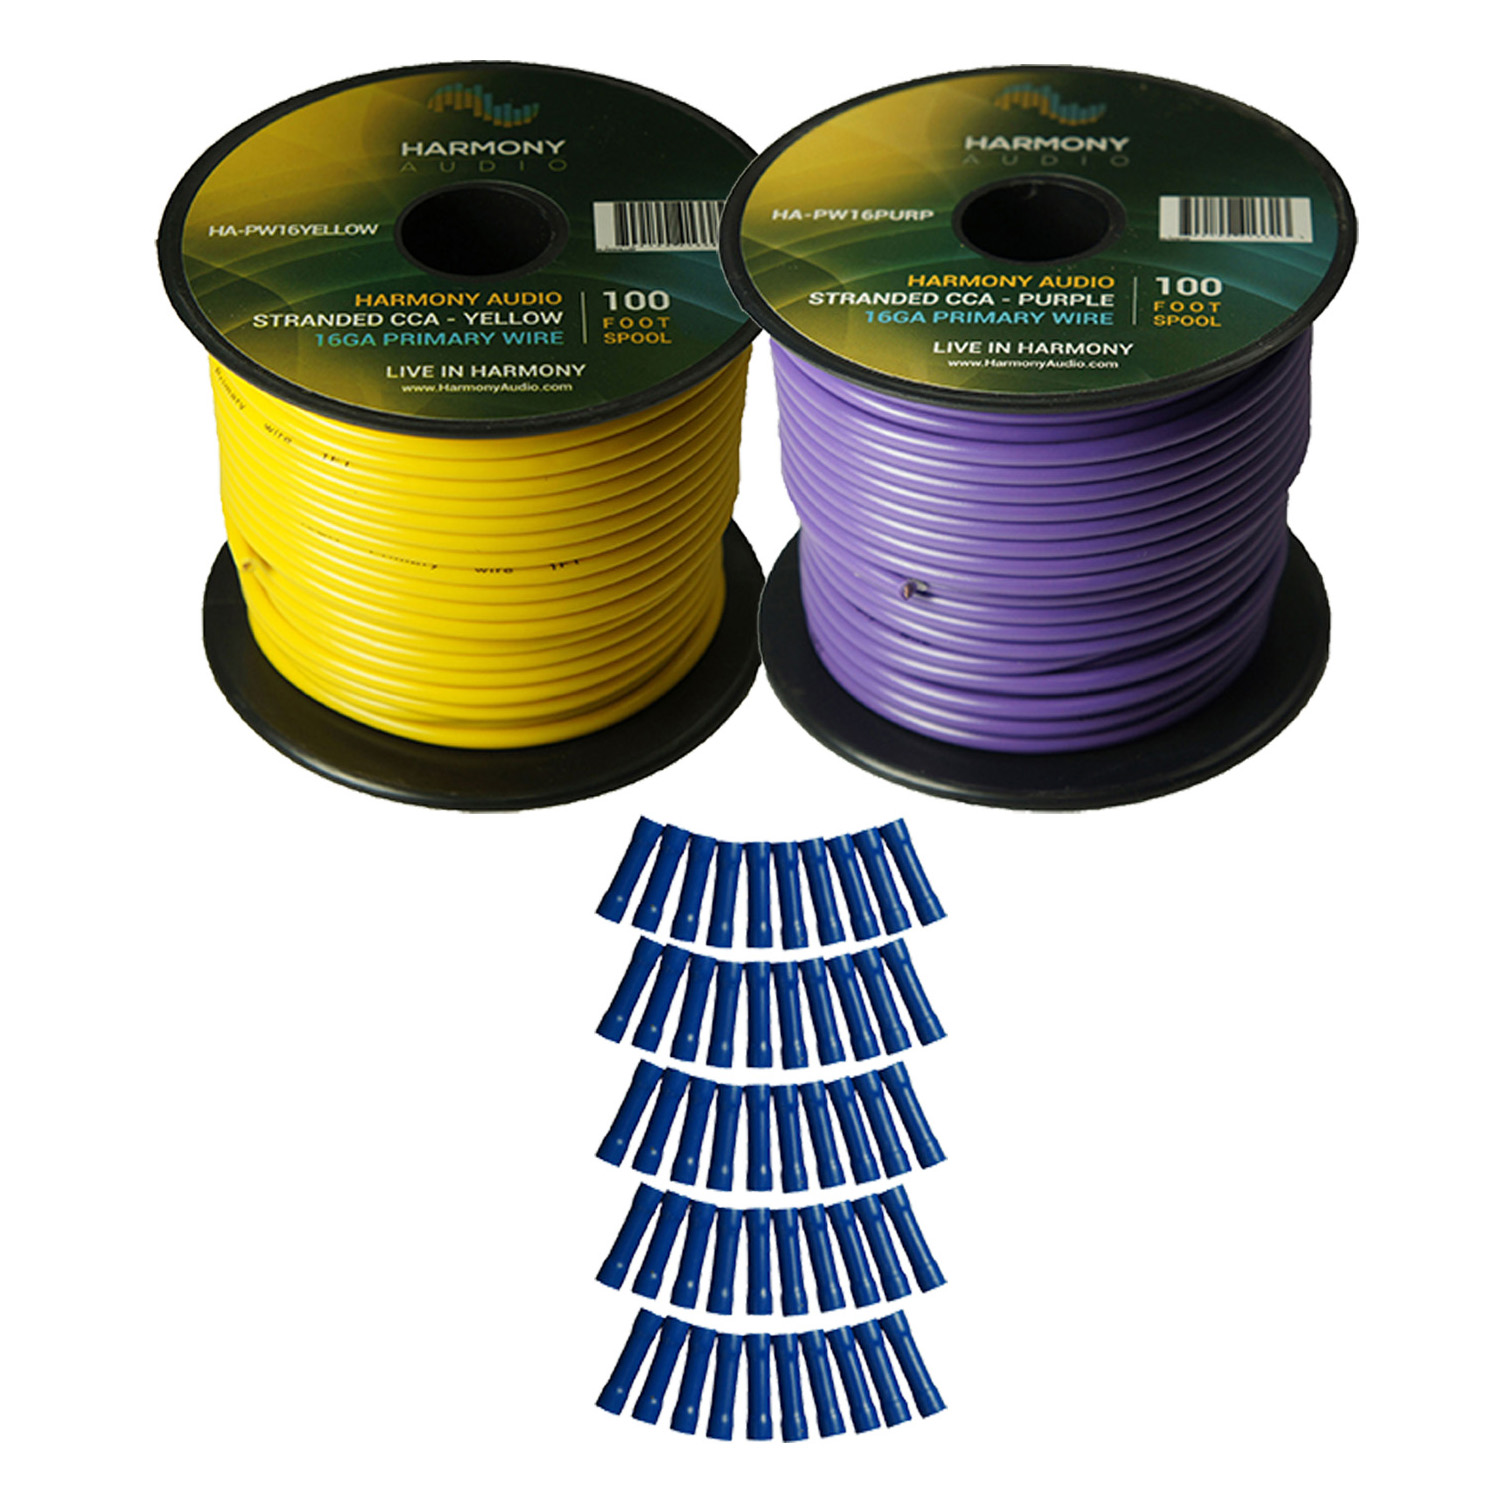 Harmony Audio Primary Single Conductor 16 Gauge Power or Ground Wire - 2 Rolls - 200 Feet - Yellow & Purple for Car Audio / Trailer / Model Train / Remote